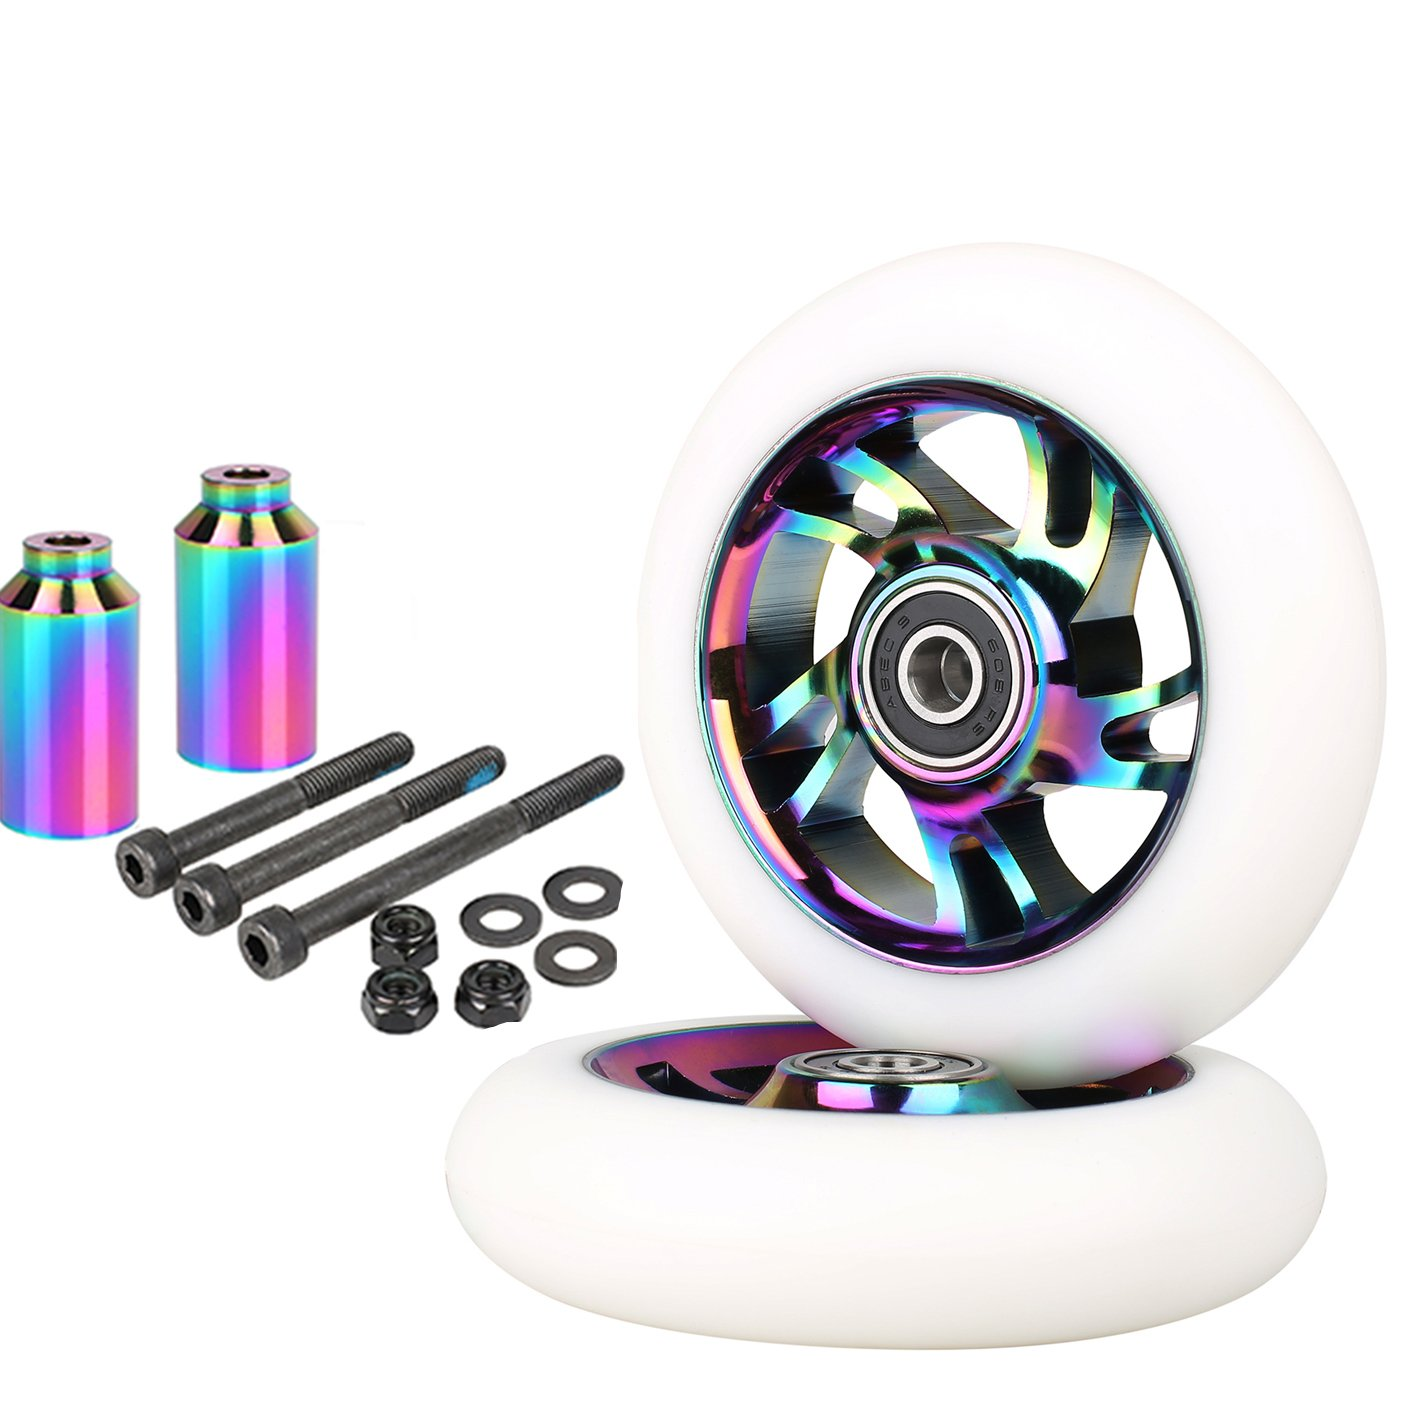 Kutrick Neo Chrome Complete 110mm 2pcs Pro Scooter Wheels with Complete 2pcs Neo Pro Stunt Scooter Pegs Kit